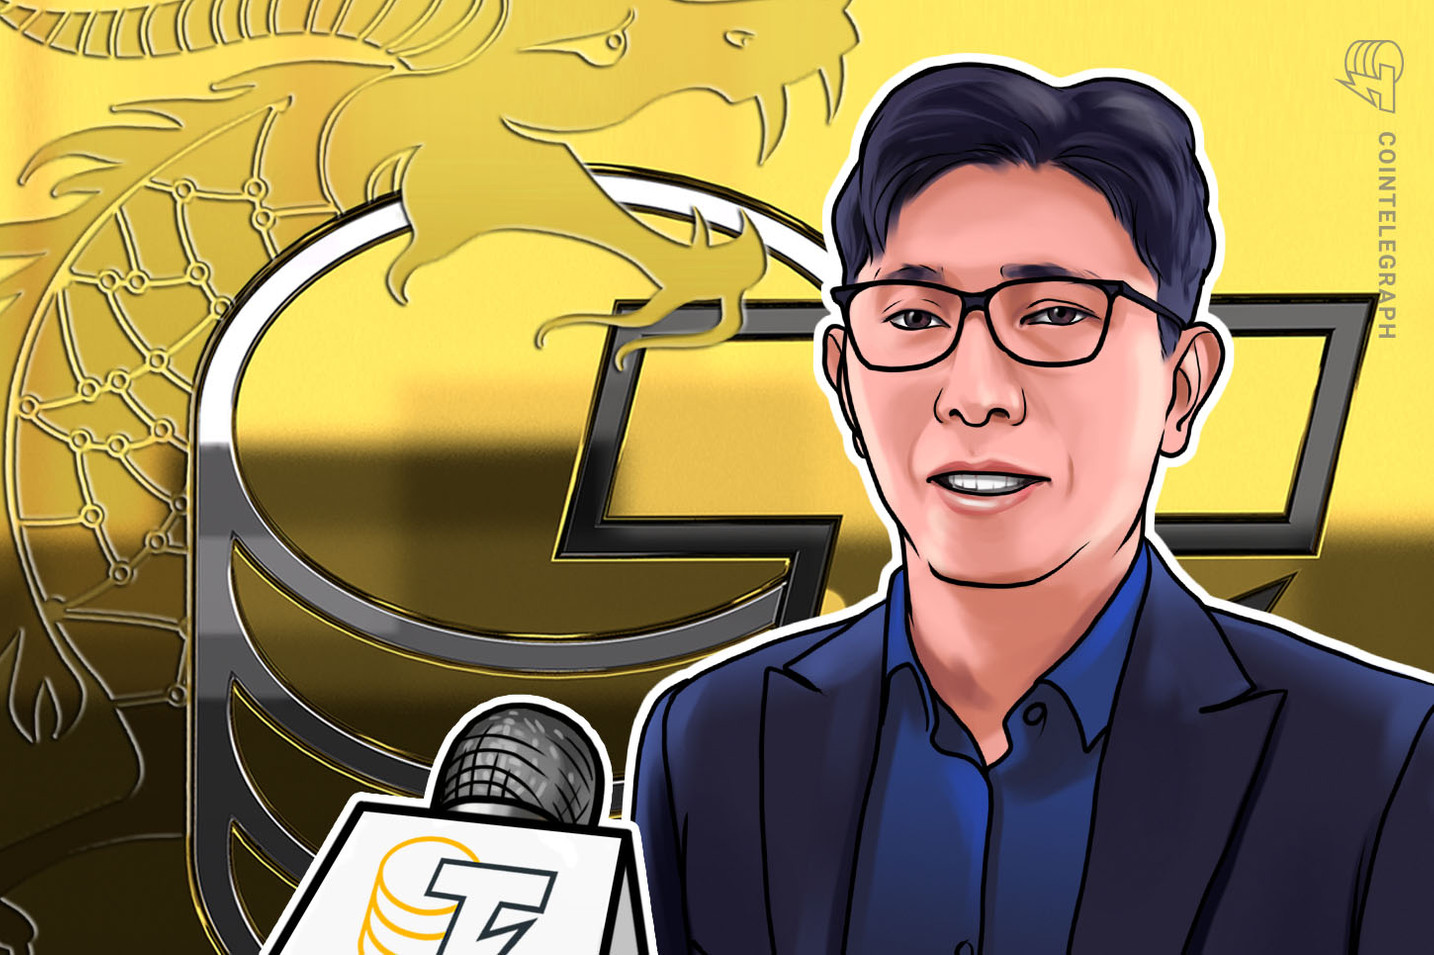 Sharing Thoughts on Security, OKEx's Jay Hao Says Customers Come First